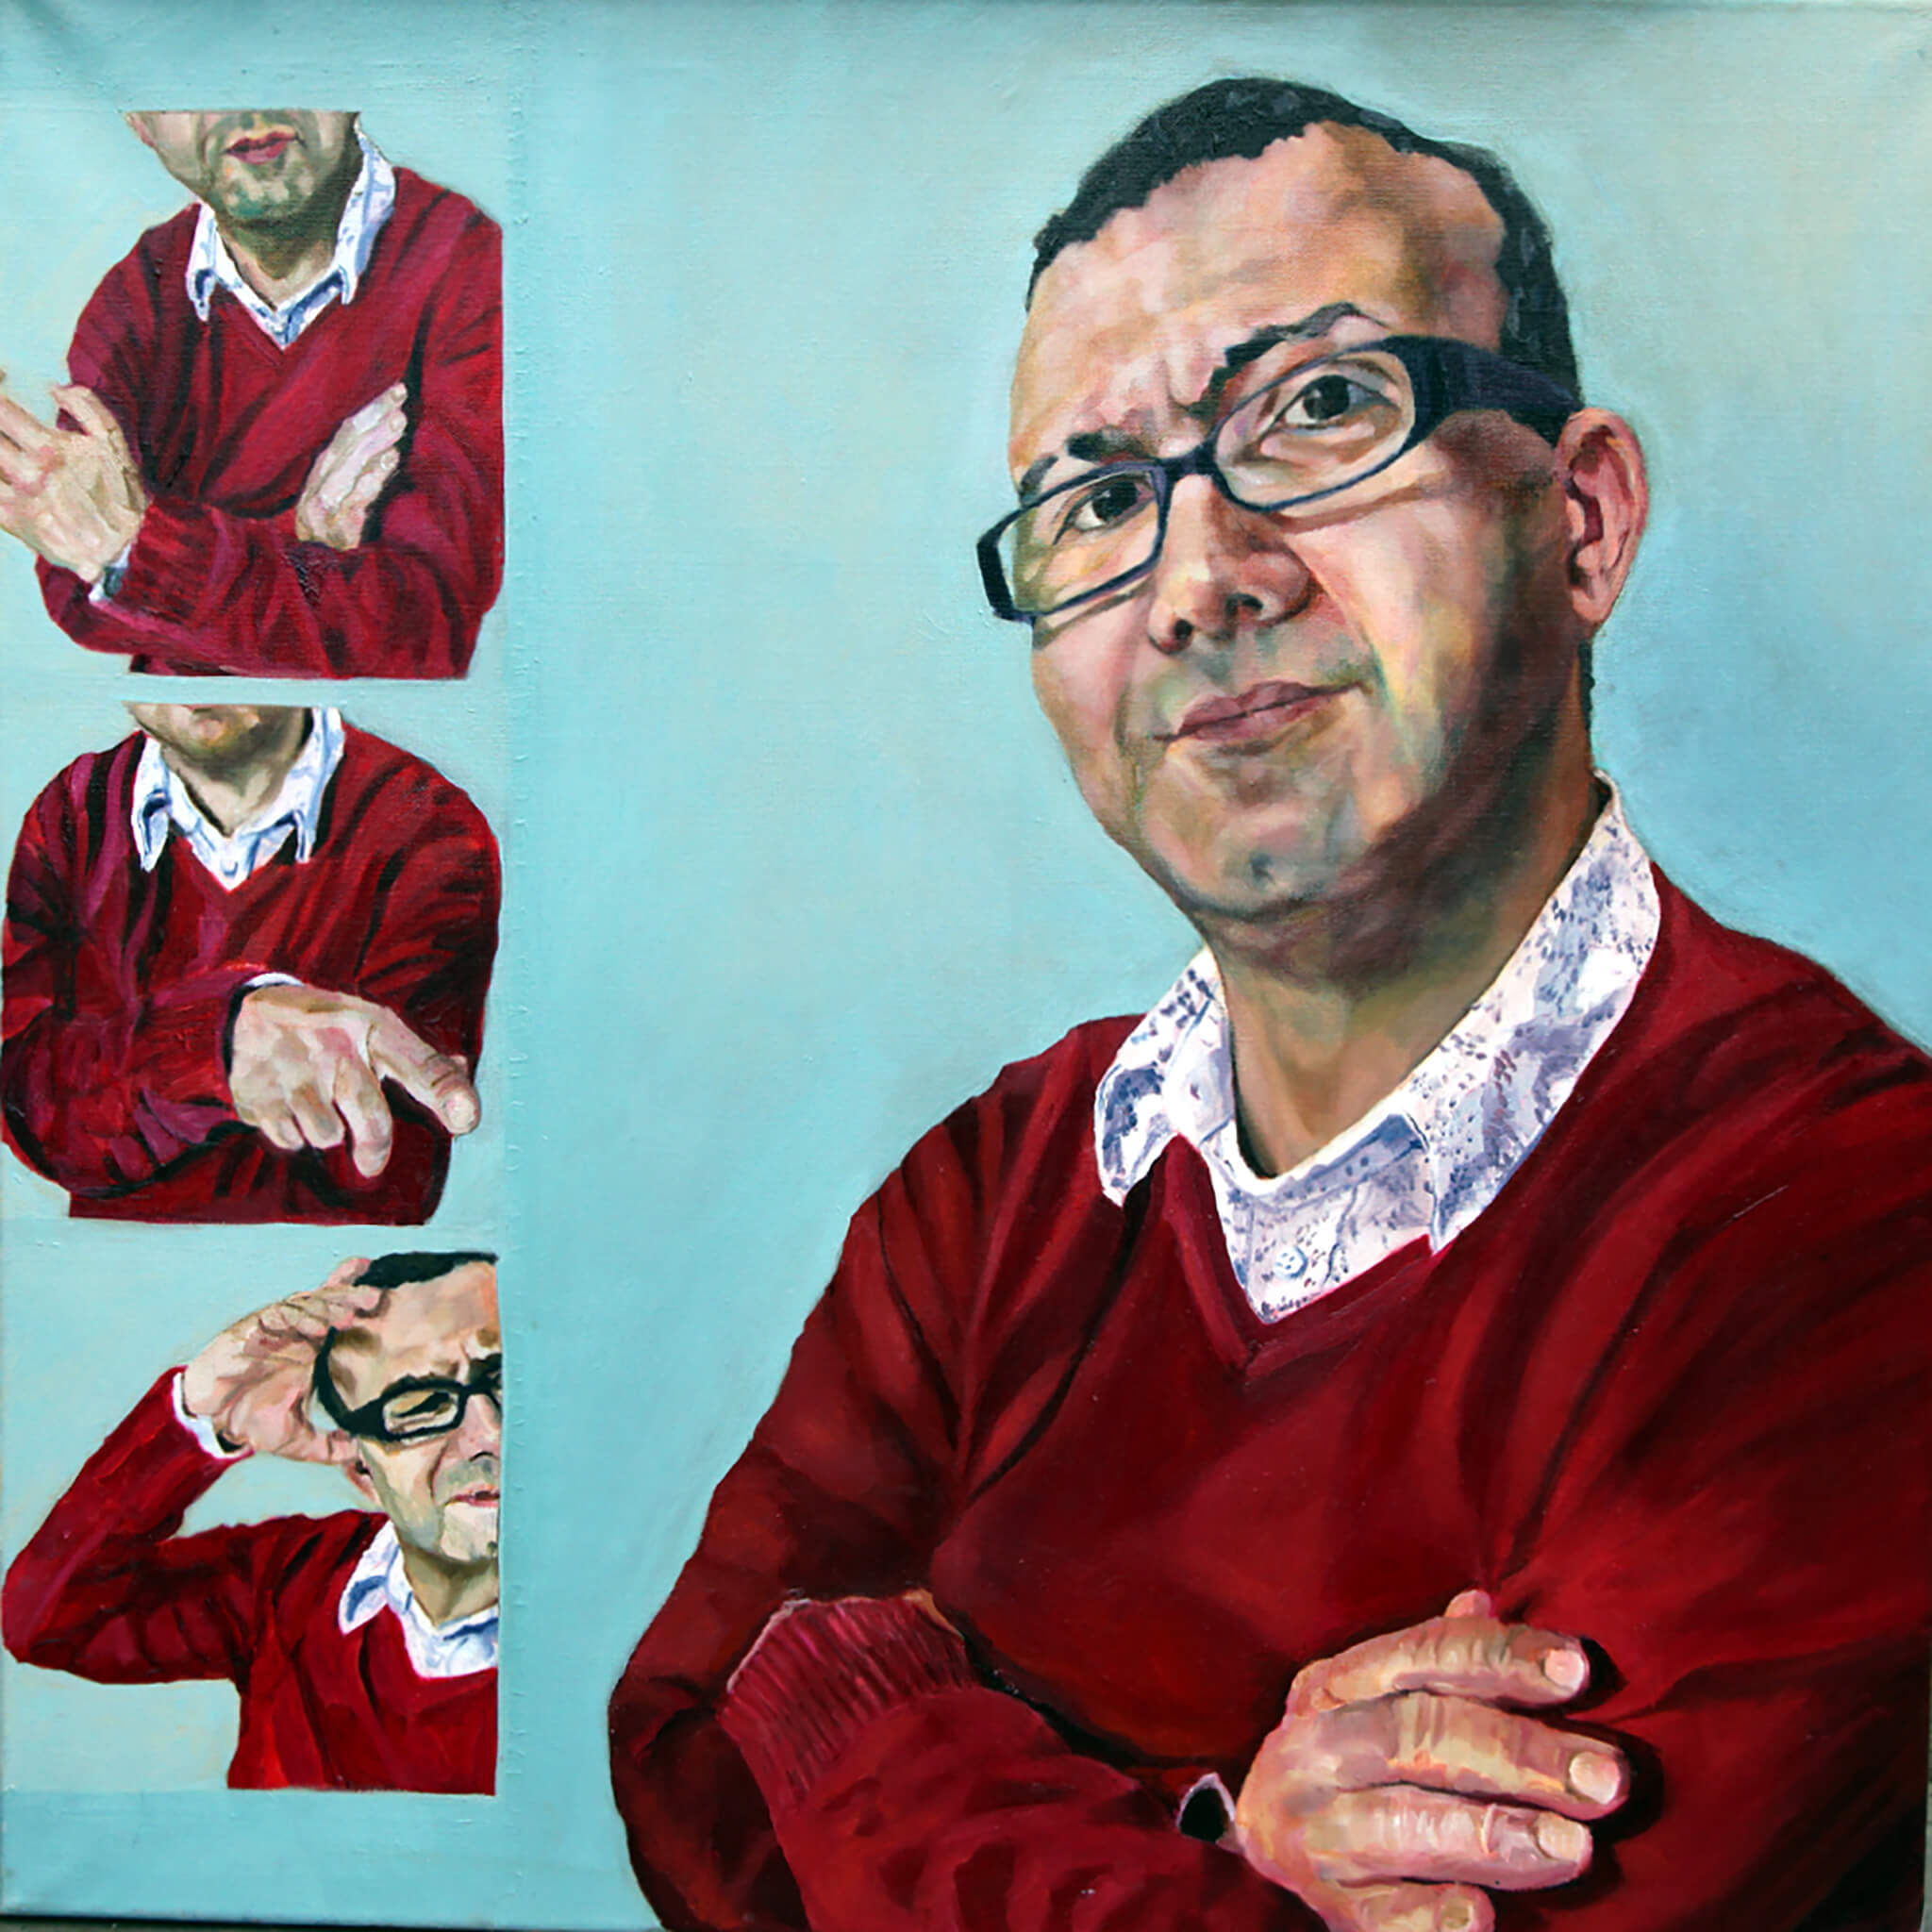 Vince Graff portrait in oils on canvas artwork by Stella Tooth.